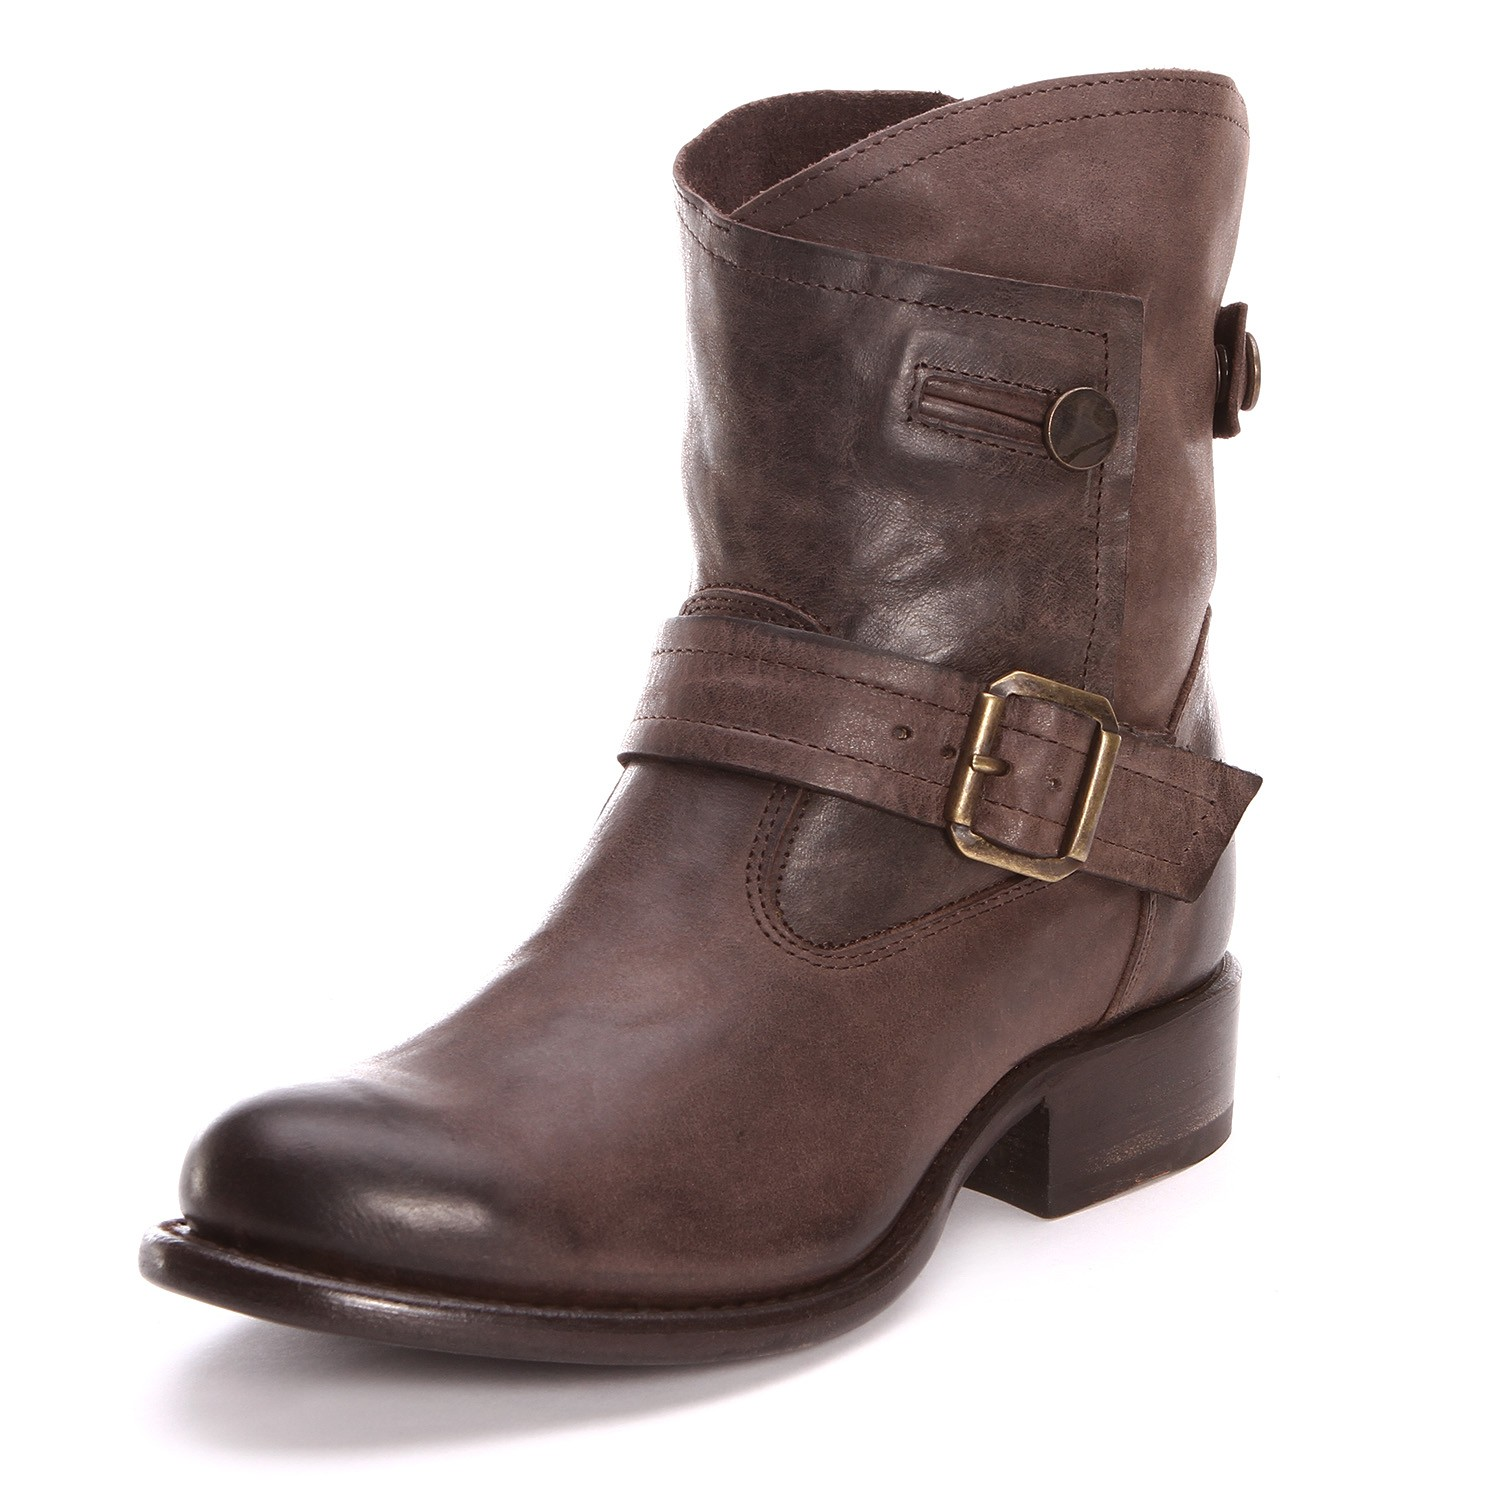 Womens Brown Ankle Boots 5OmiX7pu